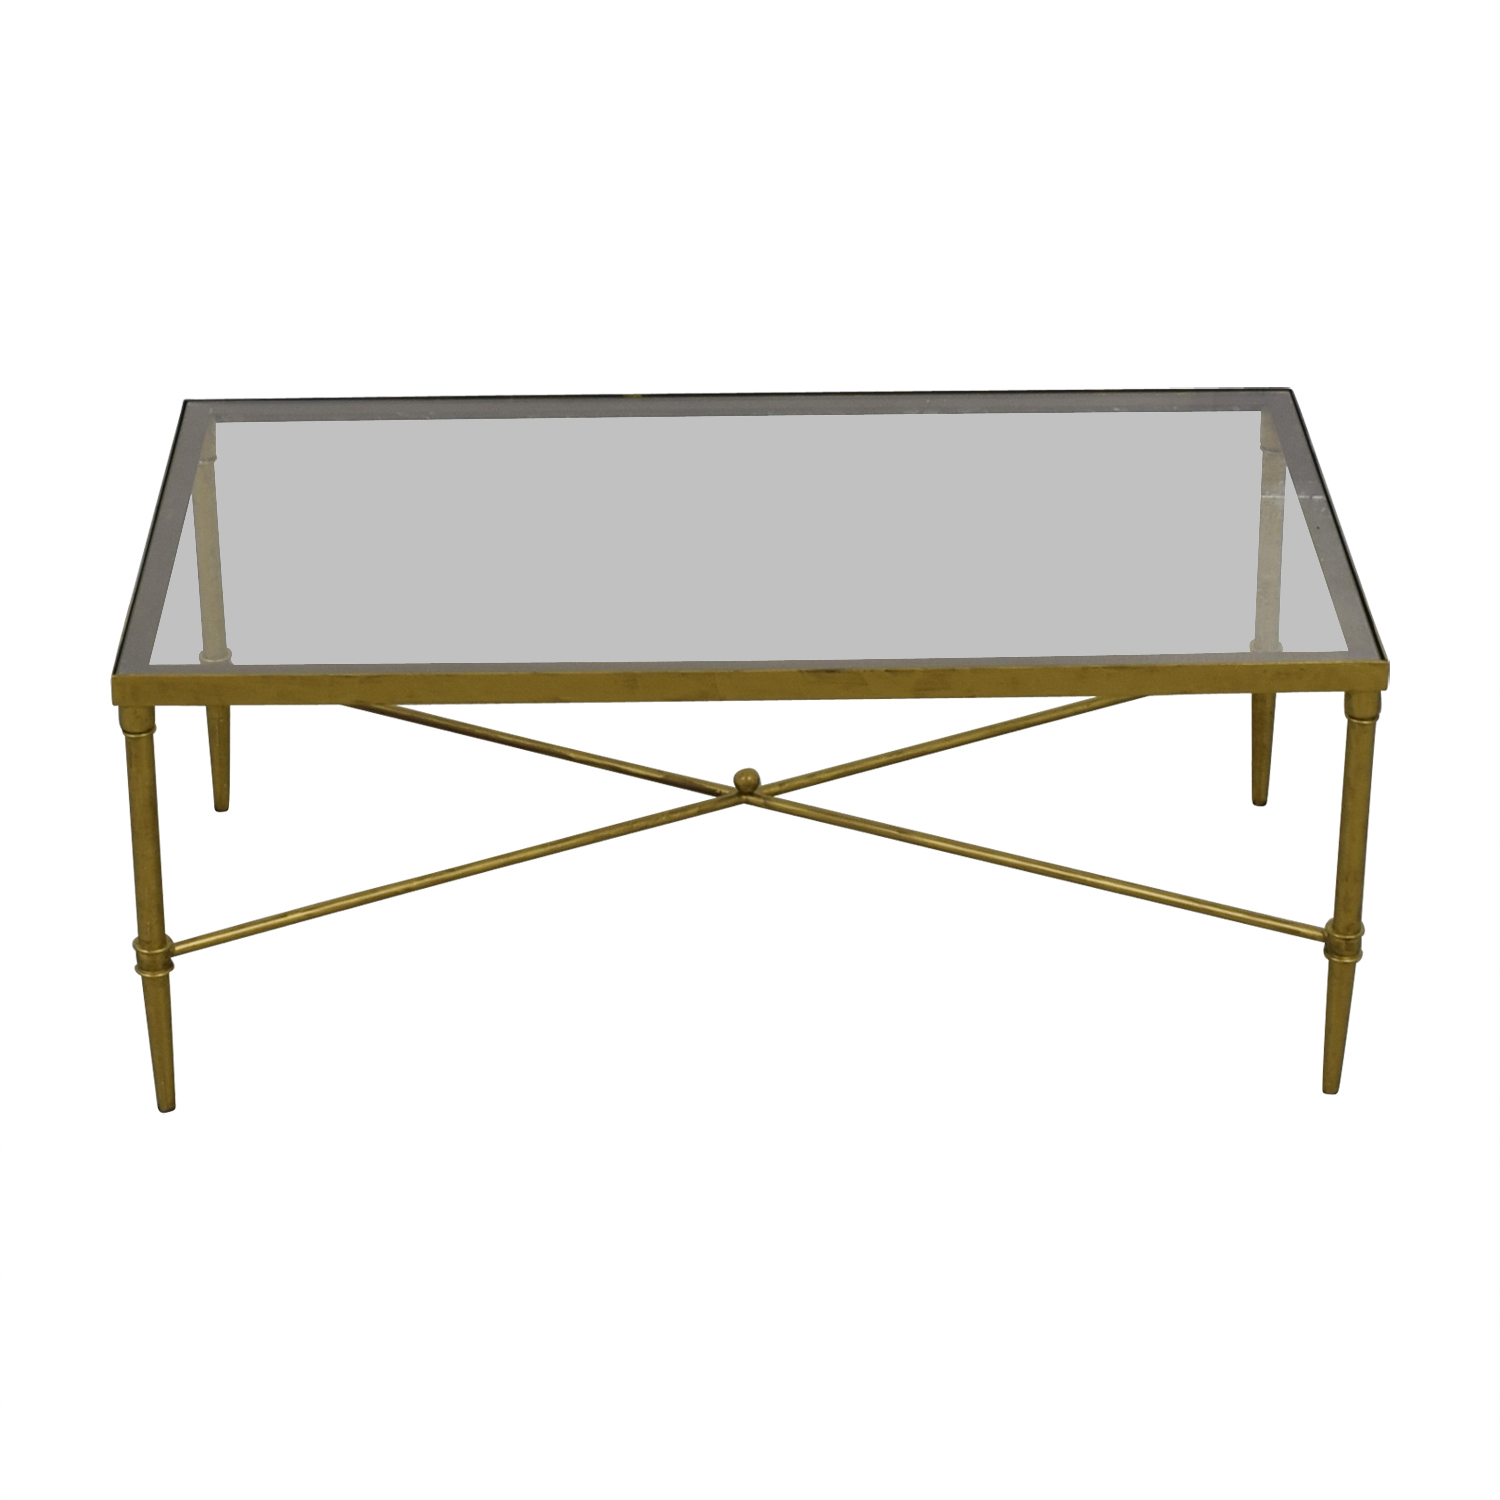 Fadden Fadden Rectangular Glass and Gold Coffee Table used